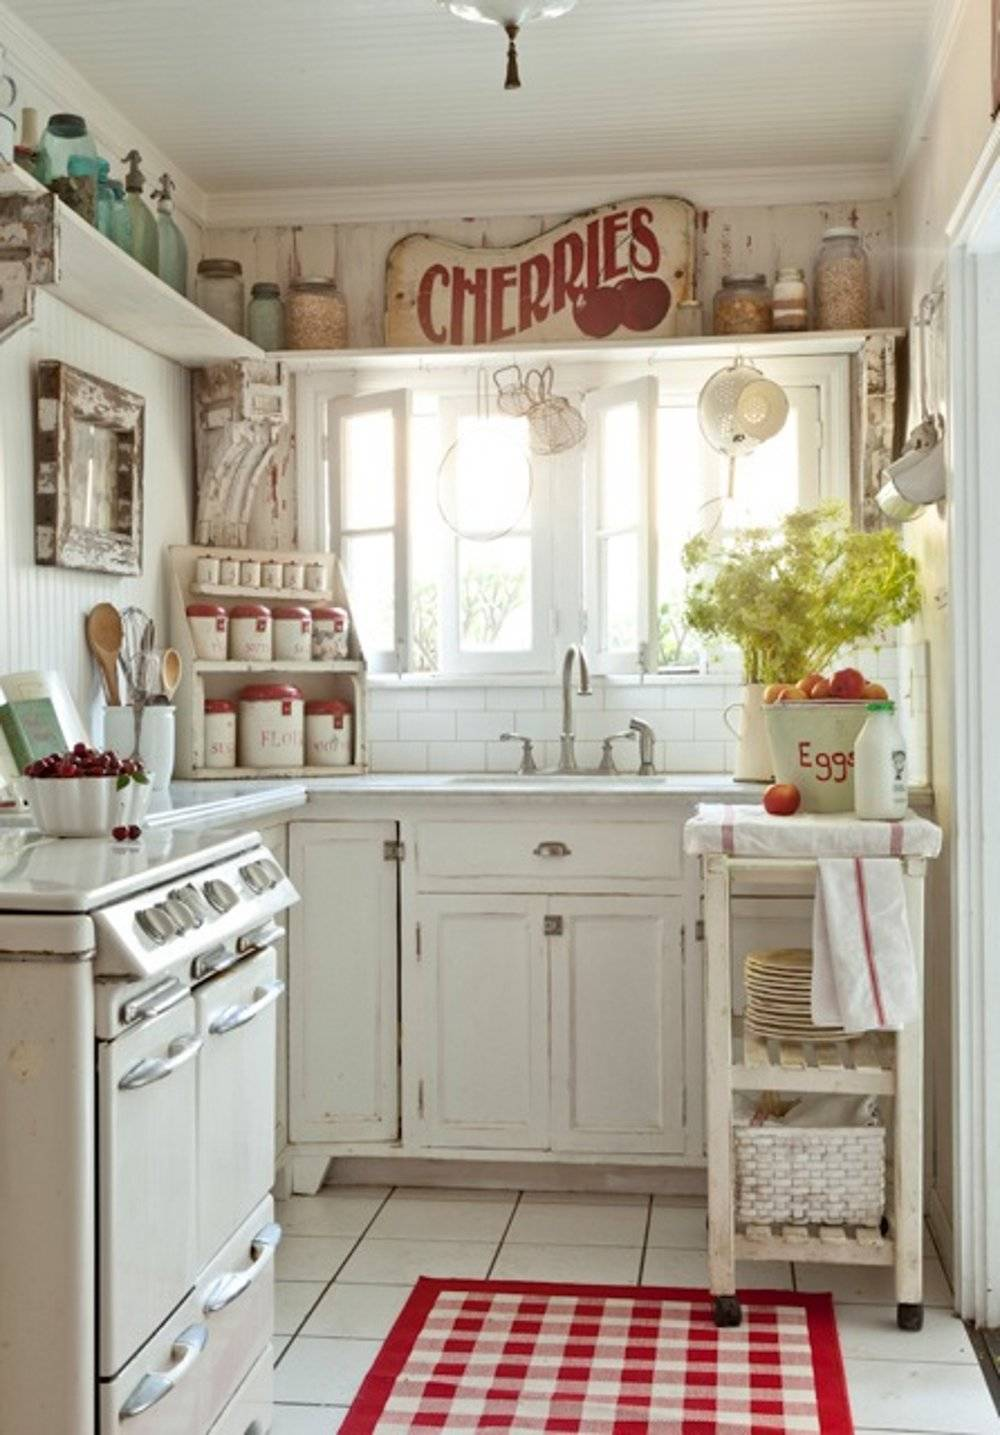 75 Beautiful Shabby Chic Style Kitchen Pictures Ideas May 2021 Houzz